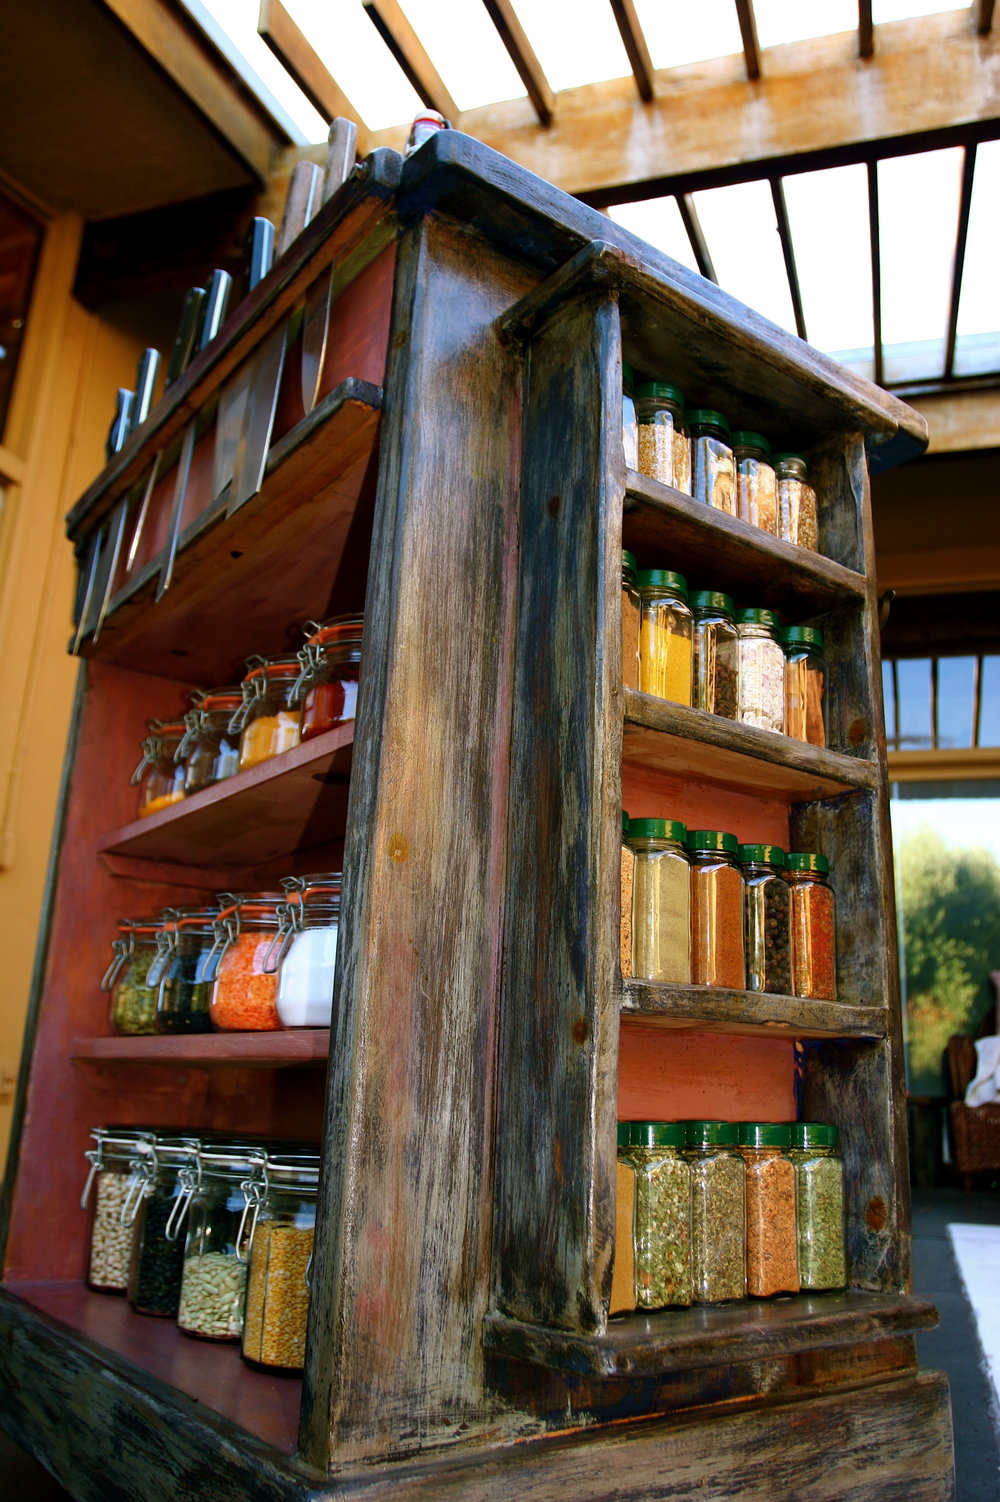 View of the : Mason Jar storage / Spice rack / Knife rack